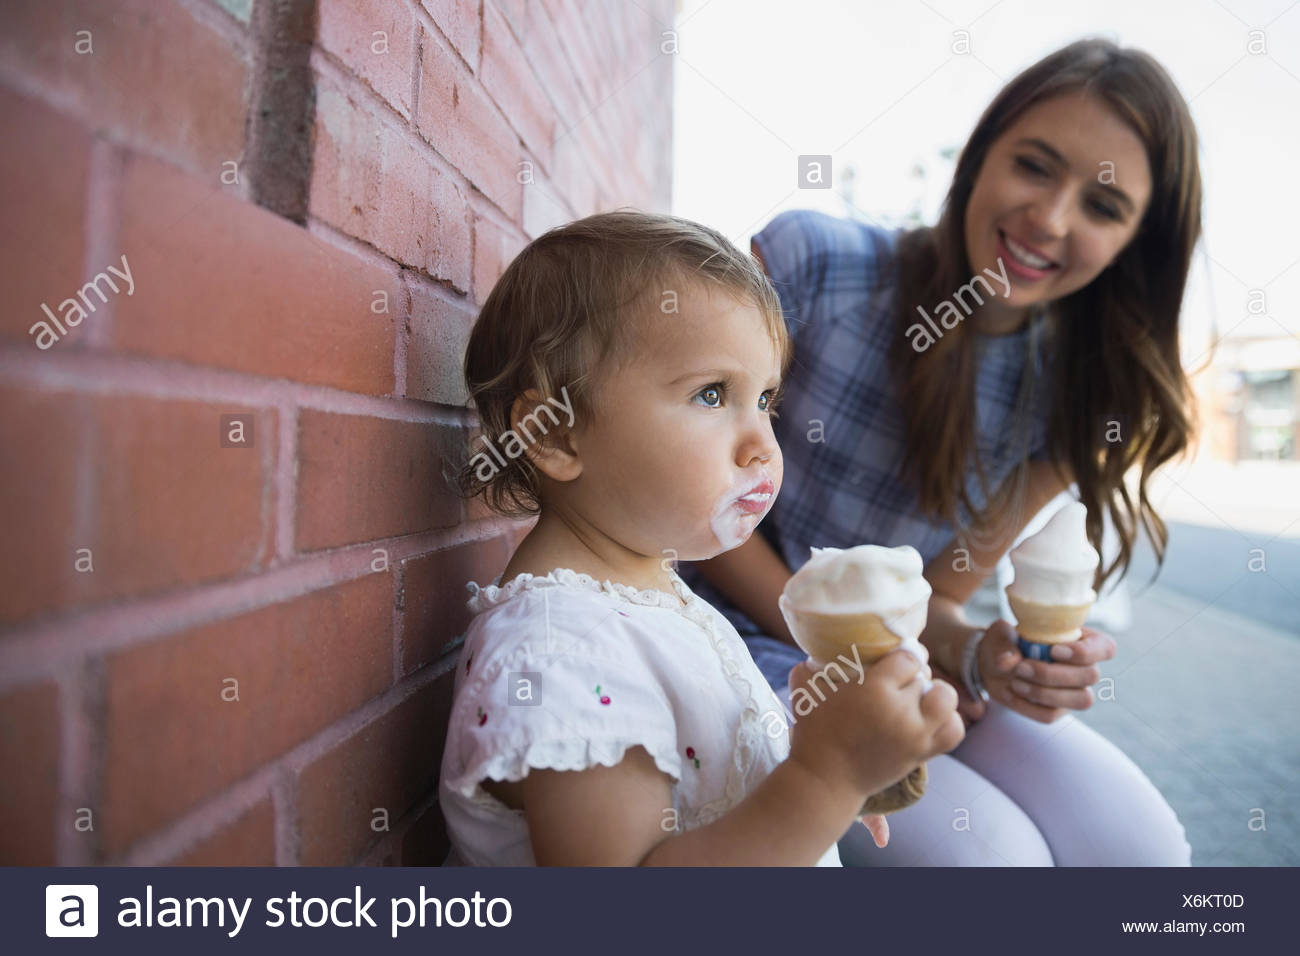 Mother and daughter eating soft serve ice cream - Stock Image